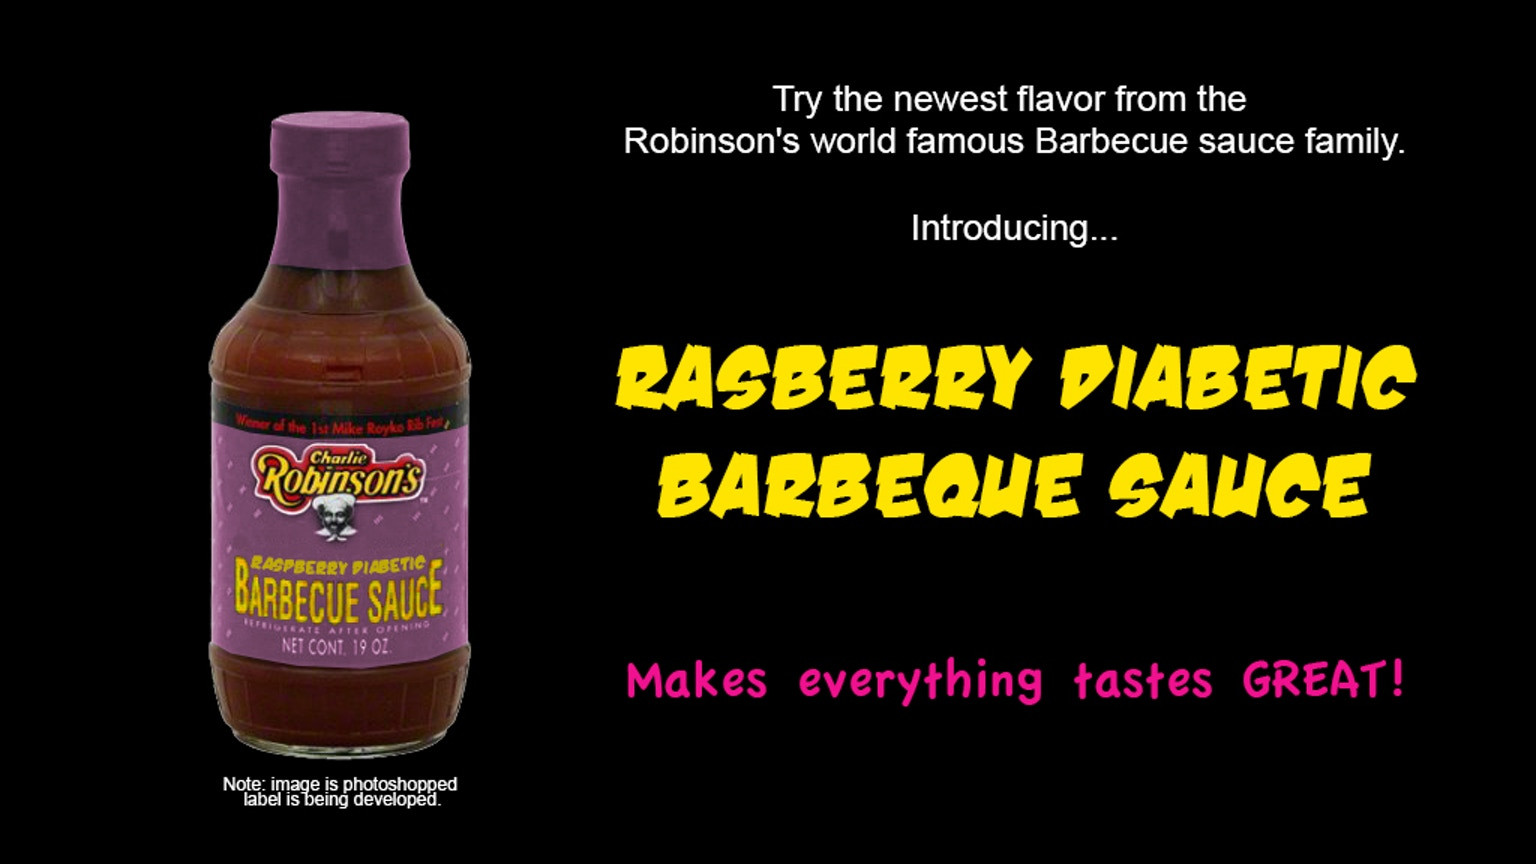 Diabetic Bbq Sauce Recipe  Rasberry Diabetic Barbecue Sauce by Charlie Robinson